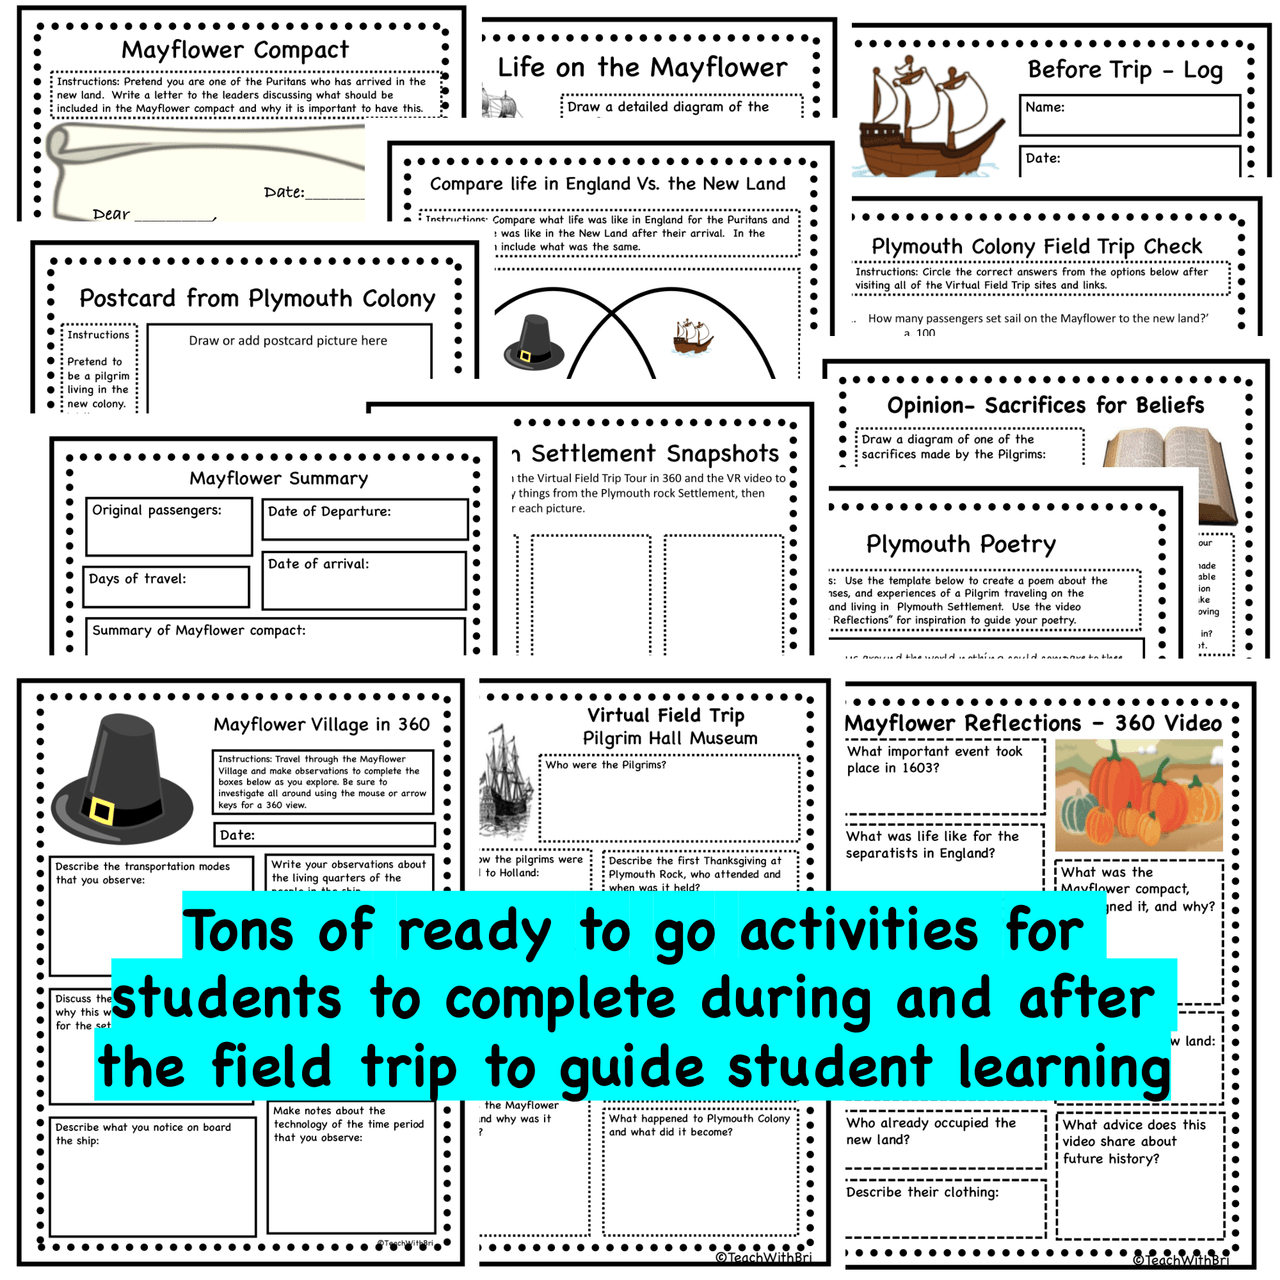 Virtual Field Trip to Plymouth Rock - 1st Thanksgiving History - Mayflower/Pilgrims in 360 and VR